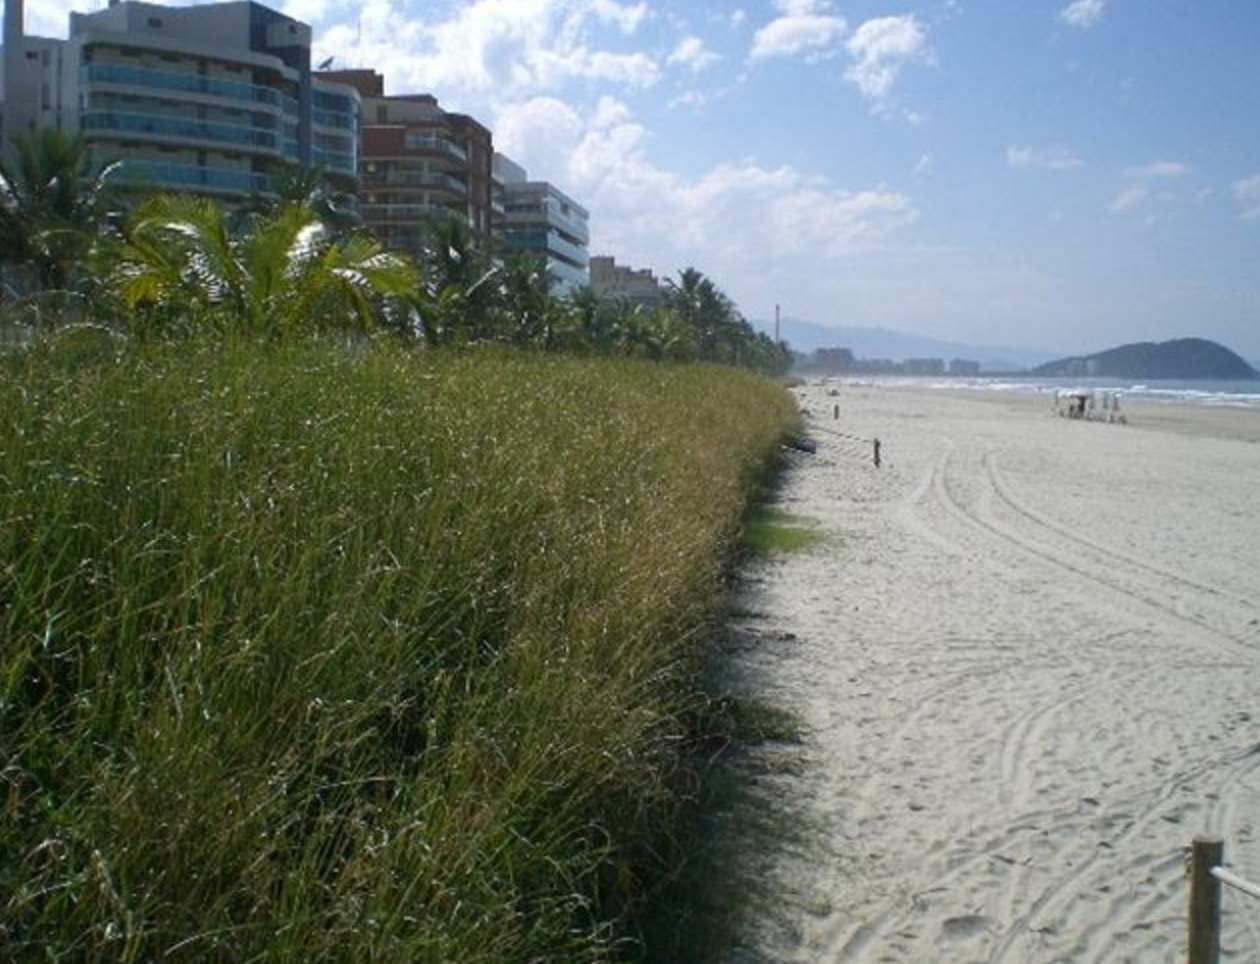 Vetiver Grass Grown as a Solution to Beach Erosion and Toxicity